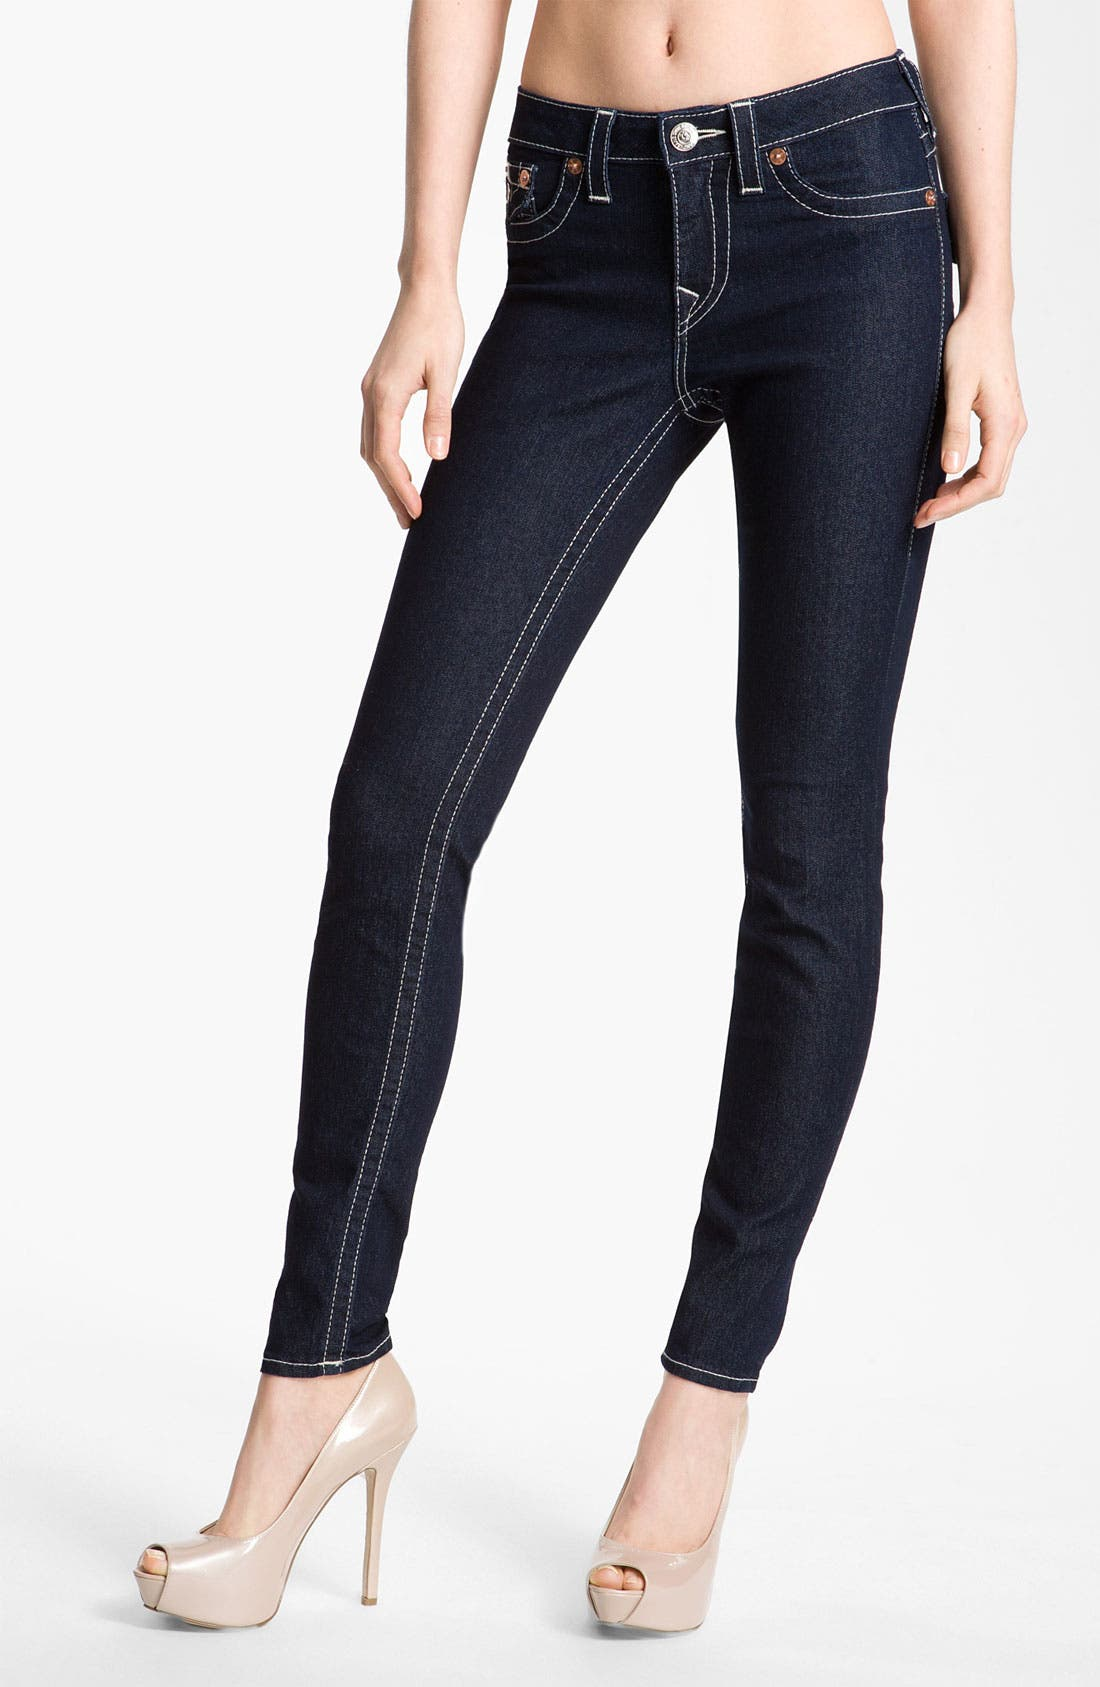 Alternate Image 1 Selected - True Religion Brand Jeans 'Serena' Skinny Leg Jeans (Body Rinse) (Online Exclusive)